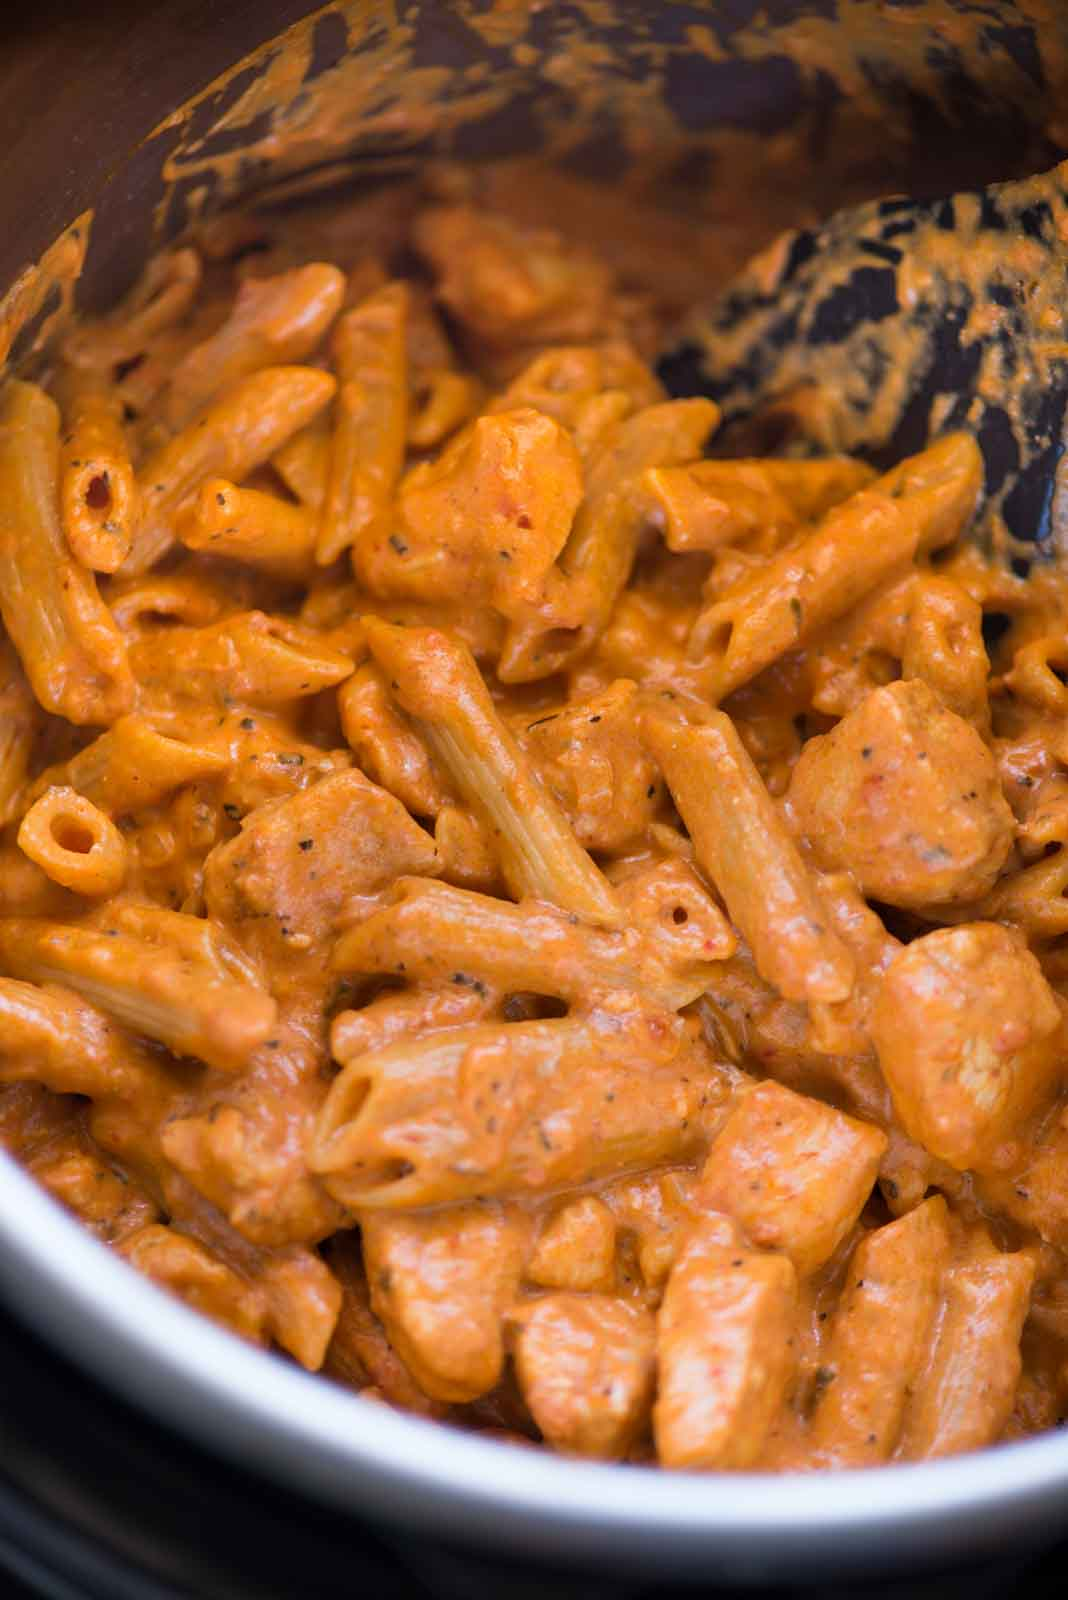 Instant Pot Chicken Pasta in a spicy tomato sauce is incredibly delicious and easy to make. This is a one-pot meal in a true sense and the family is gonna love it.